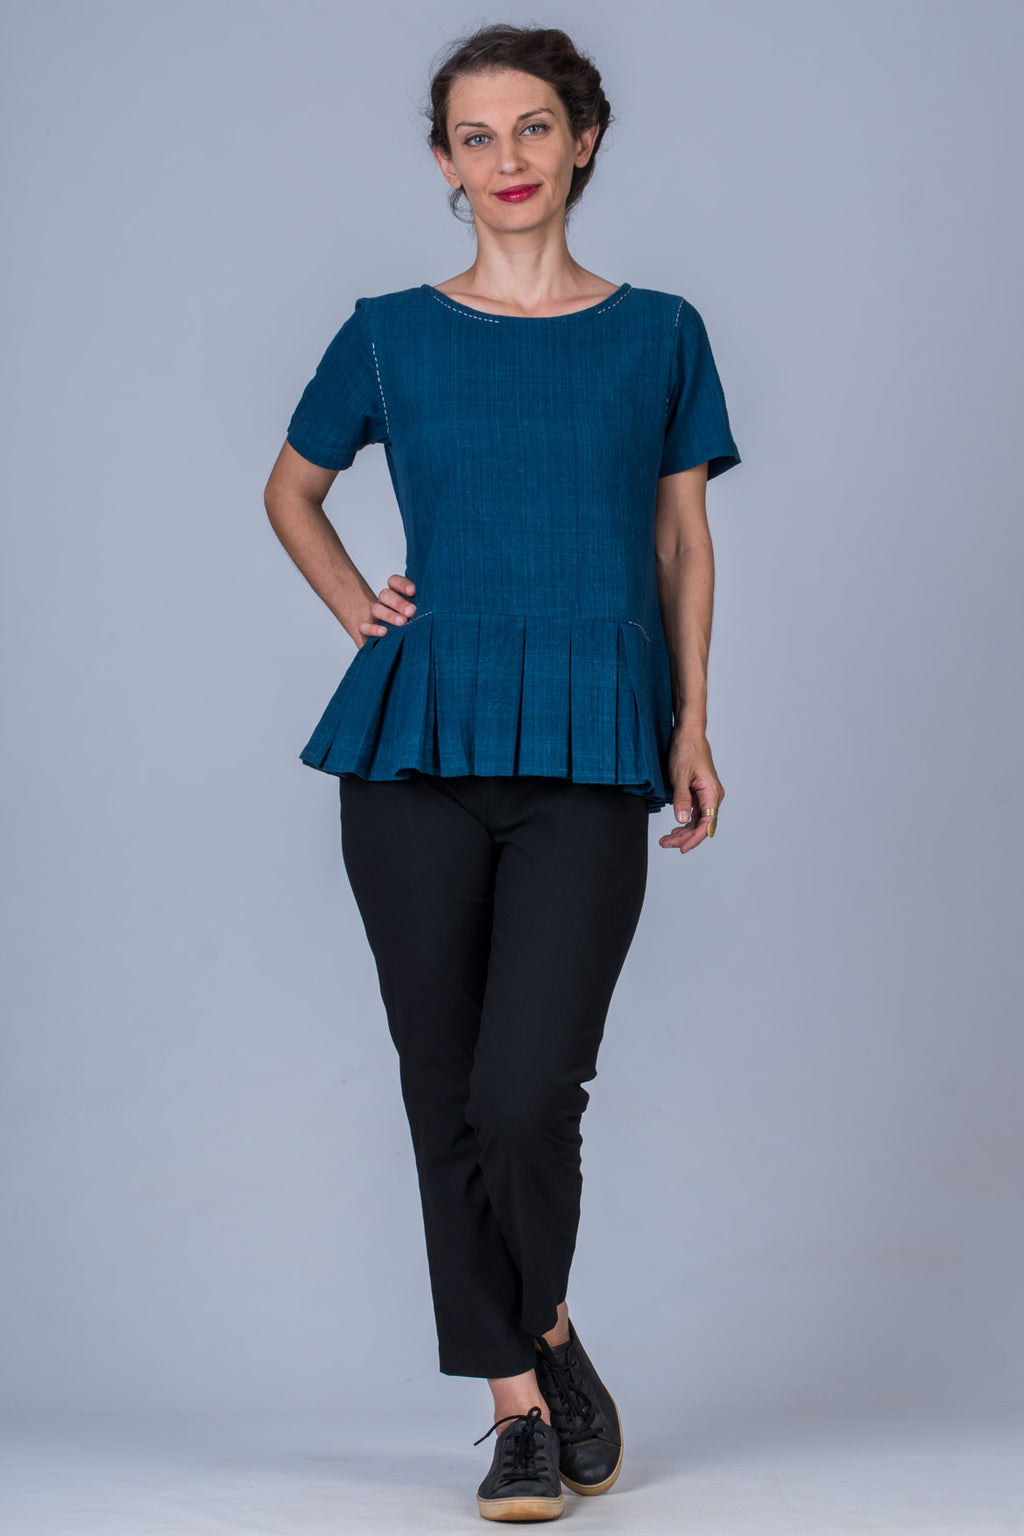 Indigo Dyed Handwoven Top - WHY